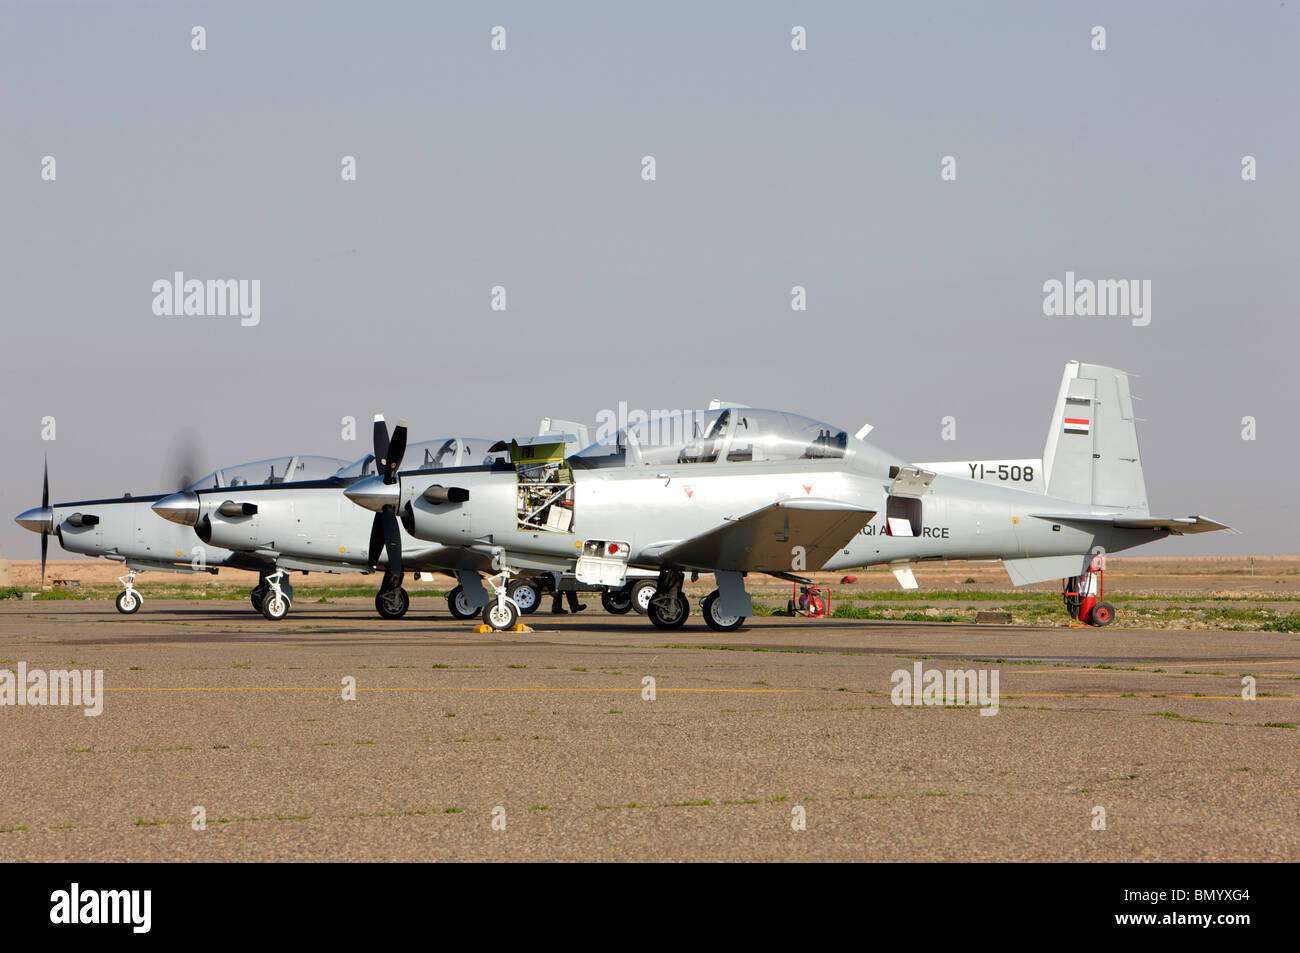 T-6 Texan trainer aircraft of the Iraqi Air Force. - Stock Image